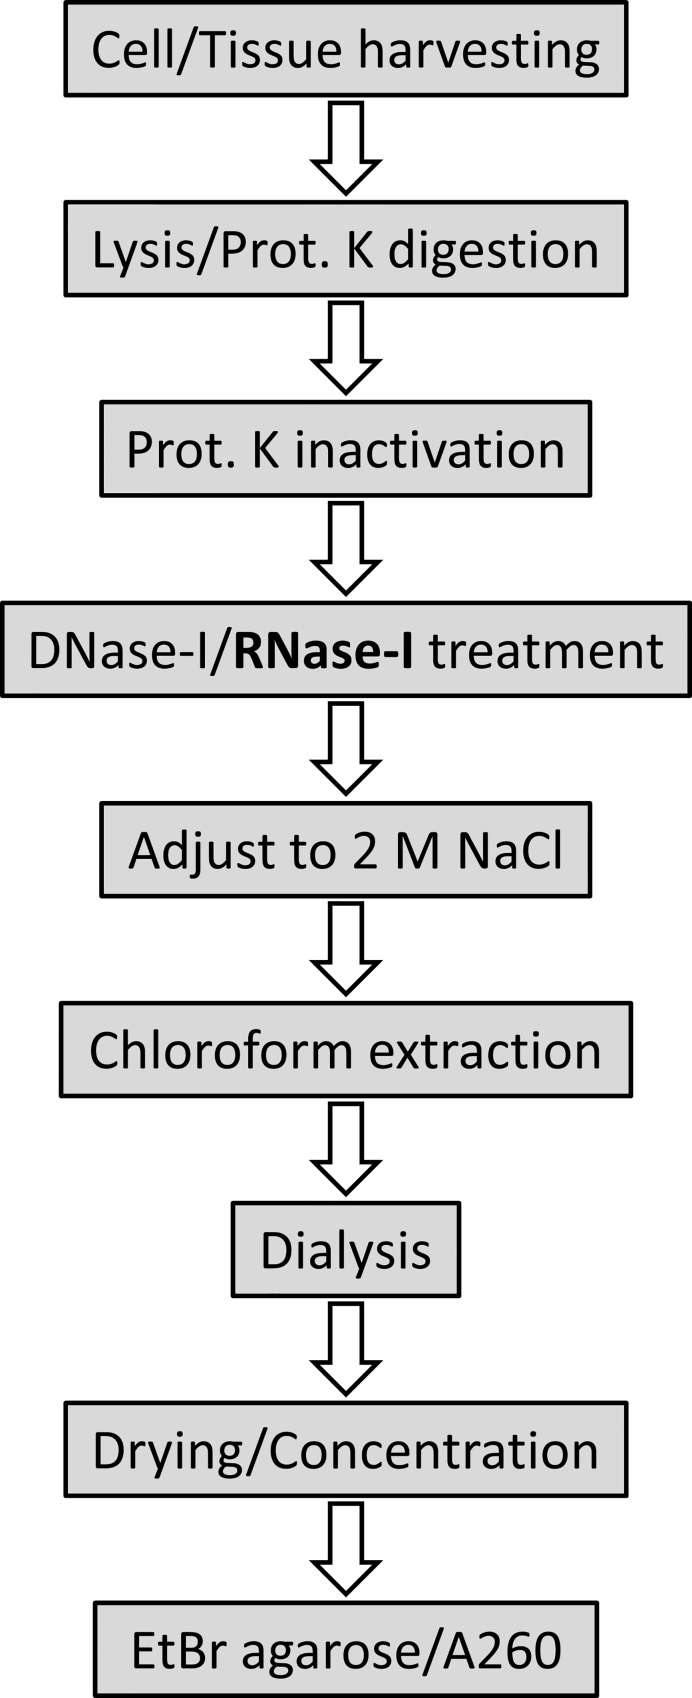 Schematic workflow for glycosaminoglycan (GAG) extraction including RNase treatment Cell/tissue lysates are treated overnight with proteinase K (Prot. K), followed by DNase-I and RNase-I treatment and finally chloroform extraction and dialysis to remove contaminating proteins/DNA/RNA. After drying/concentration of GAG extracts, the purity of the preparations is assessed using ethidium bromide (EtBr) agarose gel electrophoresis, or by measuring the absorbance at 260 nm (A260).